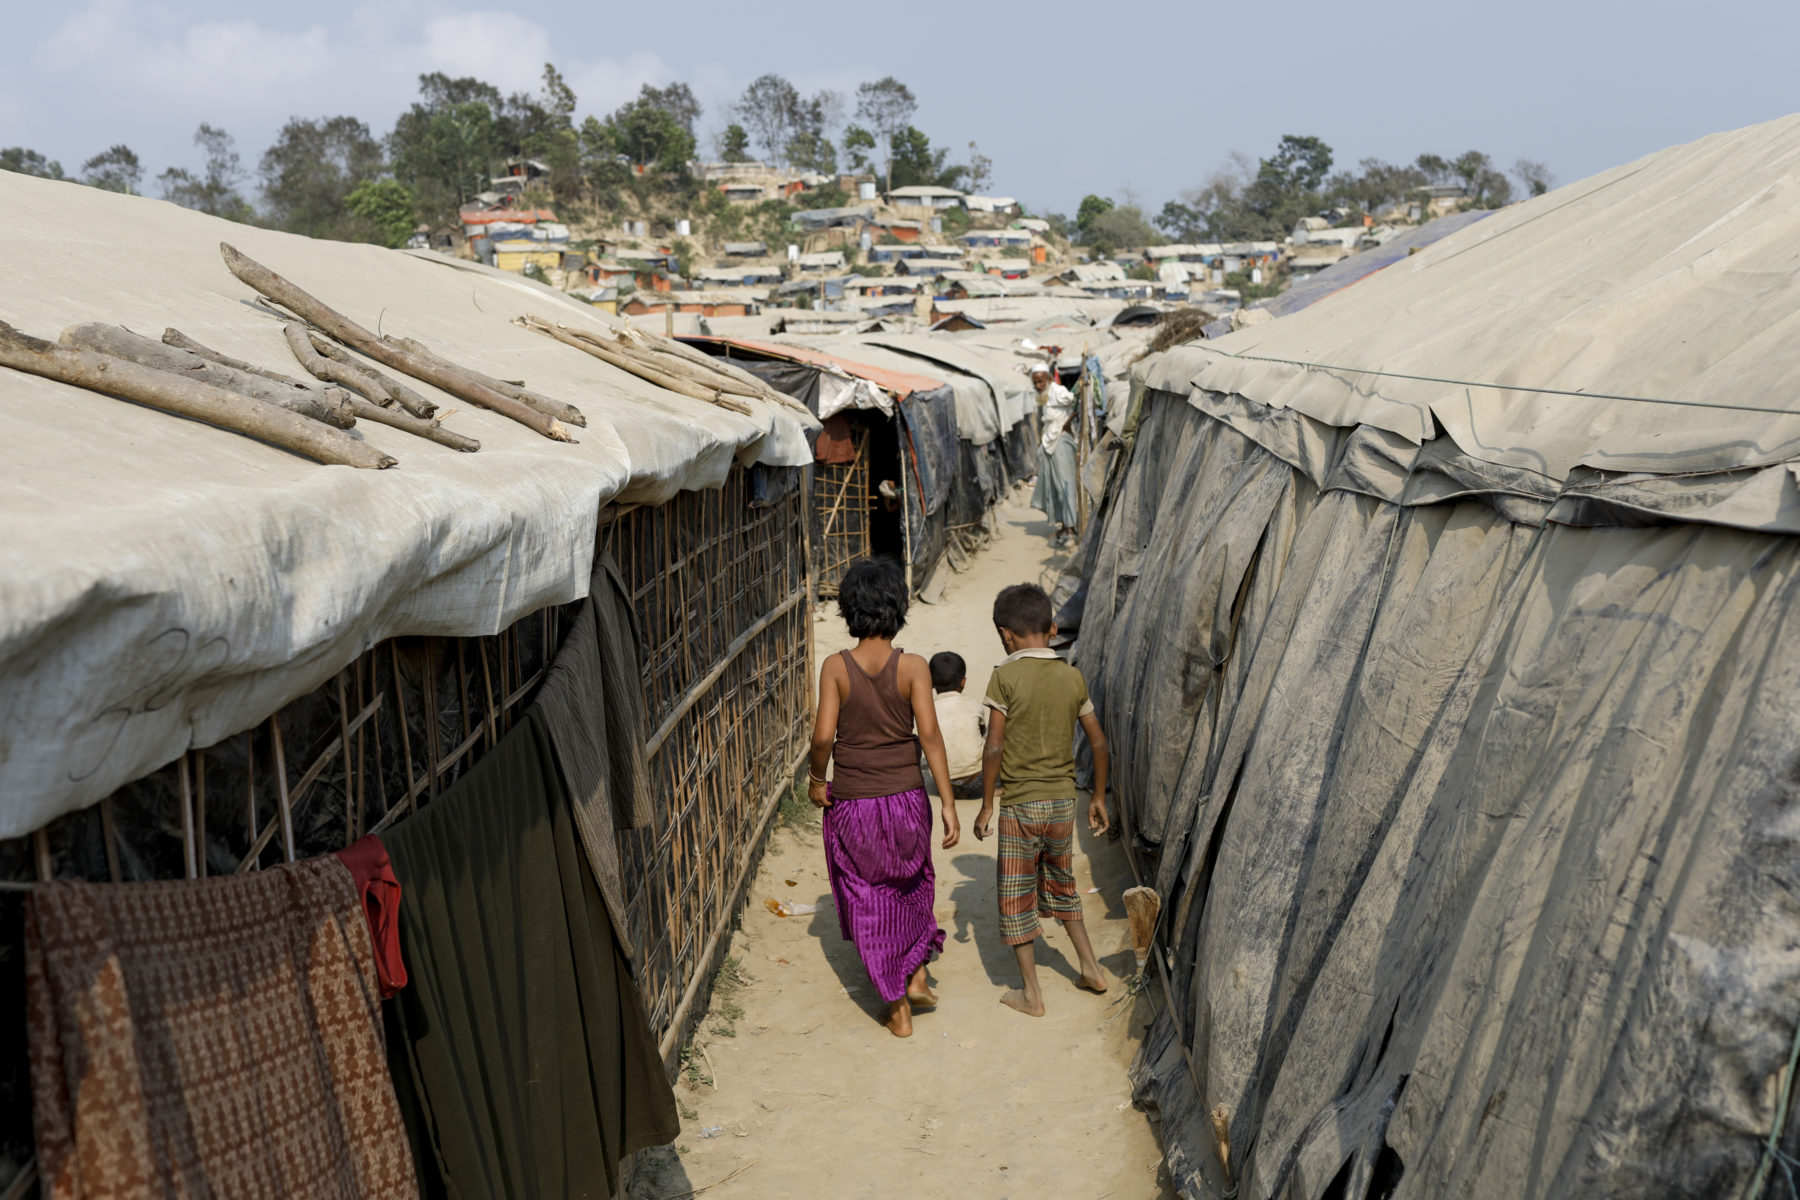 Rohingya im Flüchtlingscamp in Cox's Bazar, Bangladesh 2018 © European Union 2018, CC BY-NC-ND 2.0